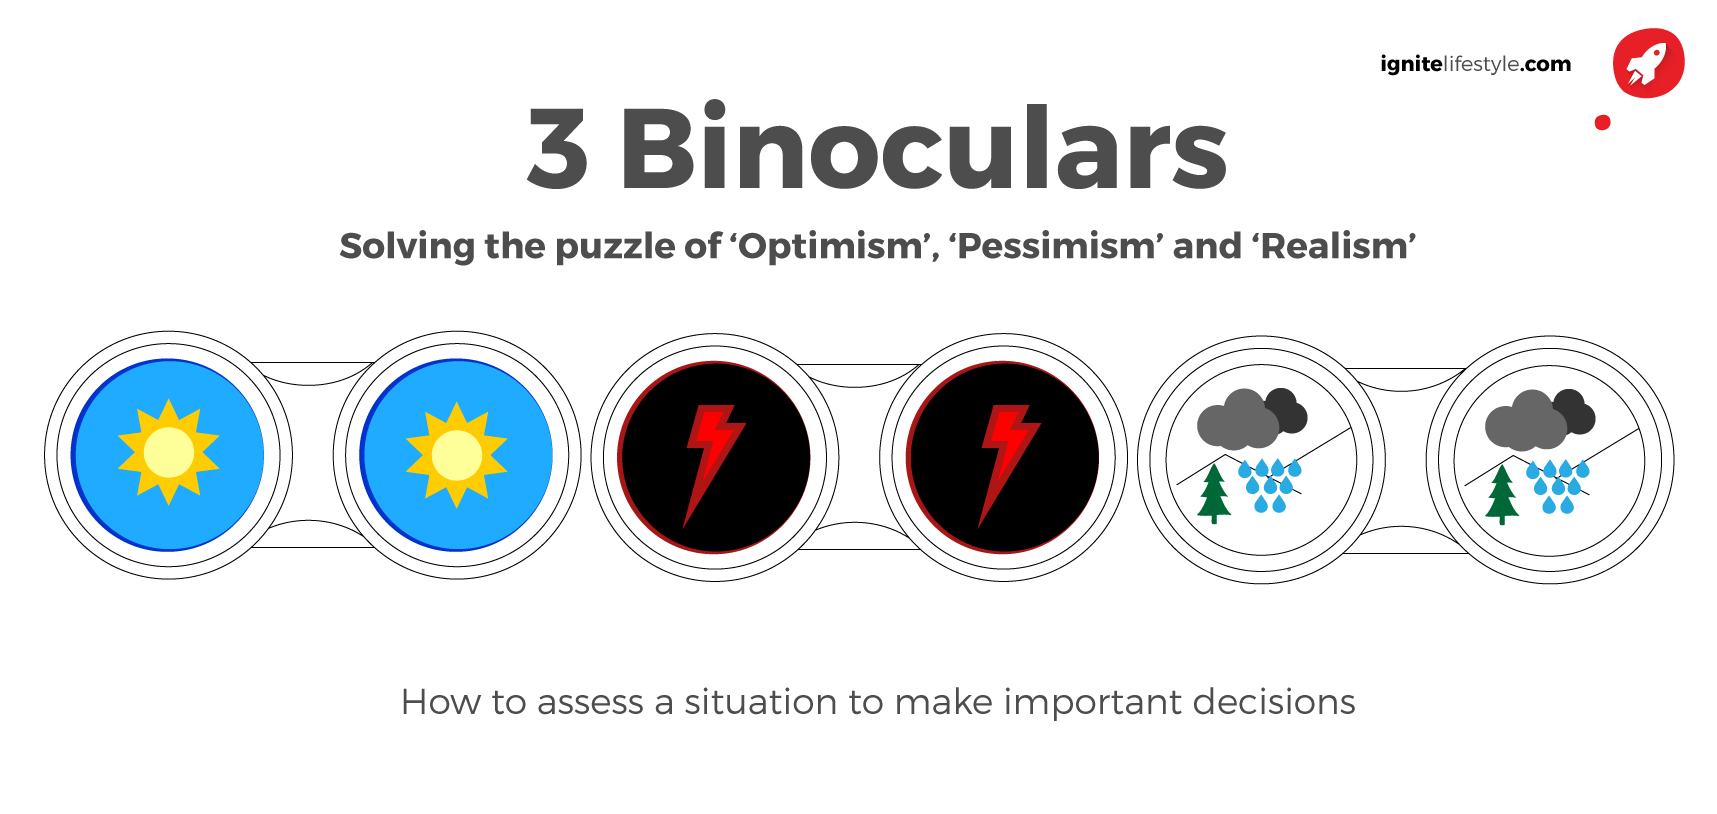 3 Binoculars : Solving The Puzzle of Pessimism,Optimism & Realism